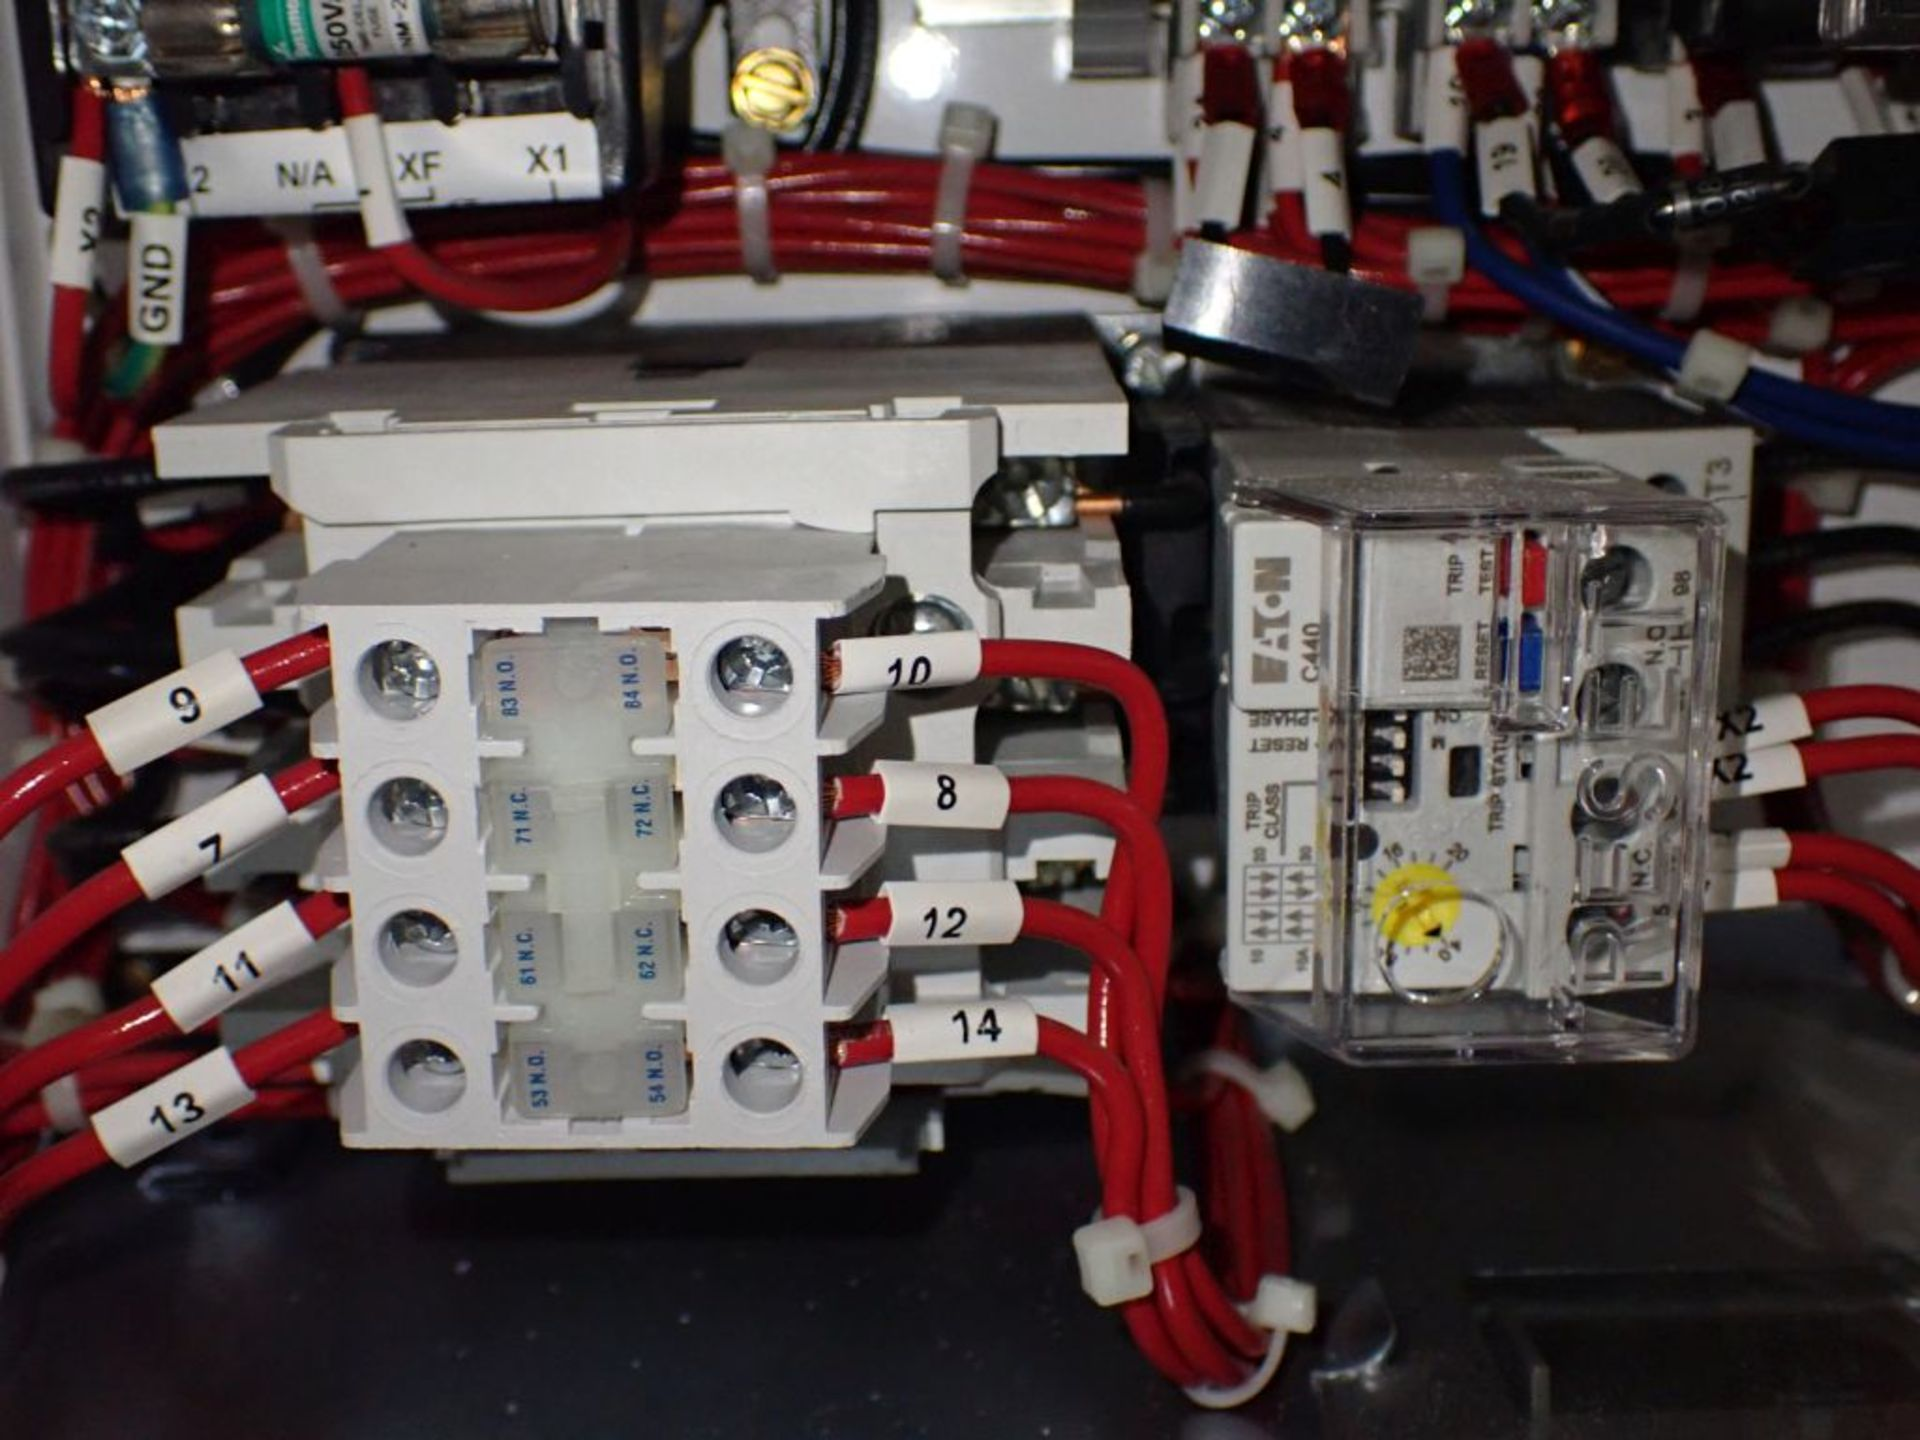 Eaton Freedom 2100 Series Motor Control Center | (11) F206-30A-10HP; (5) F206-15A-10HP; (1) SVX900- - Image 87 of 102